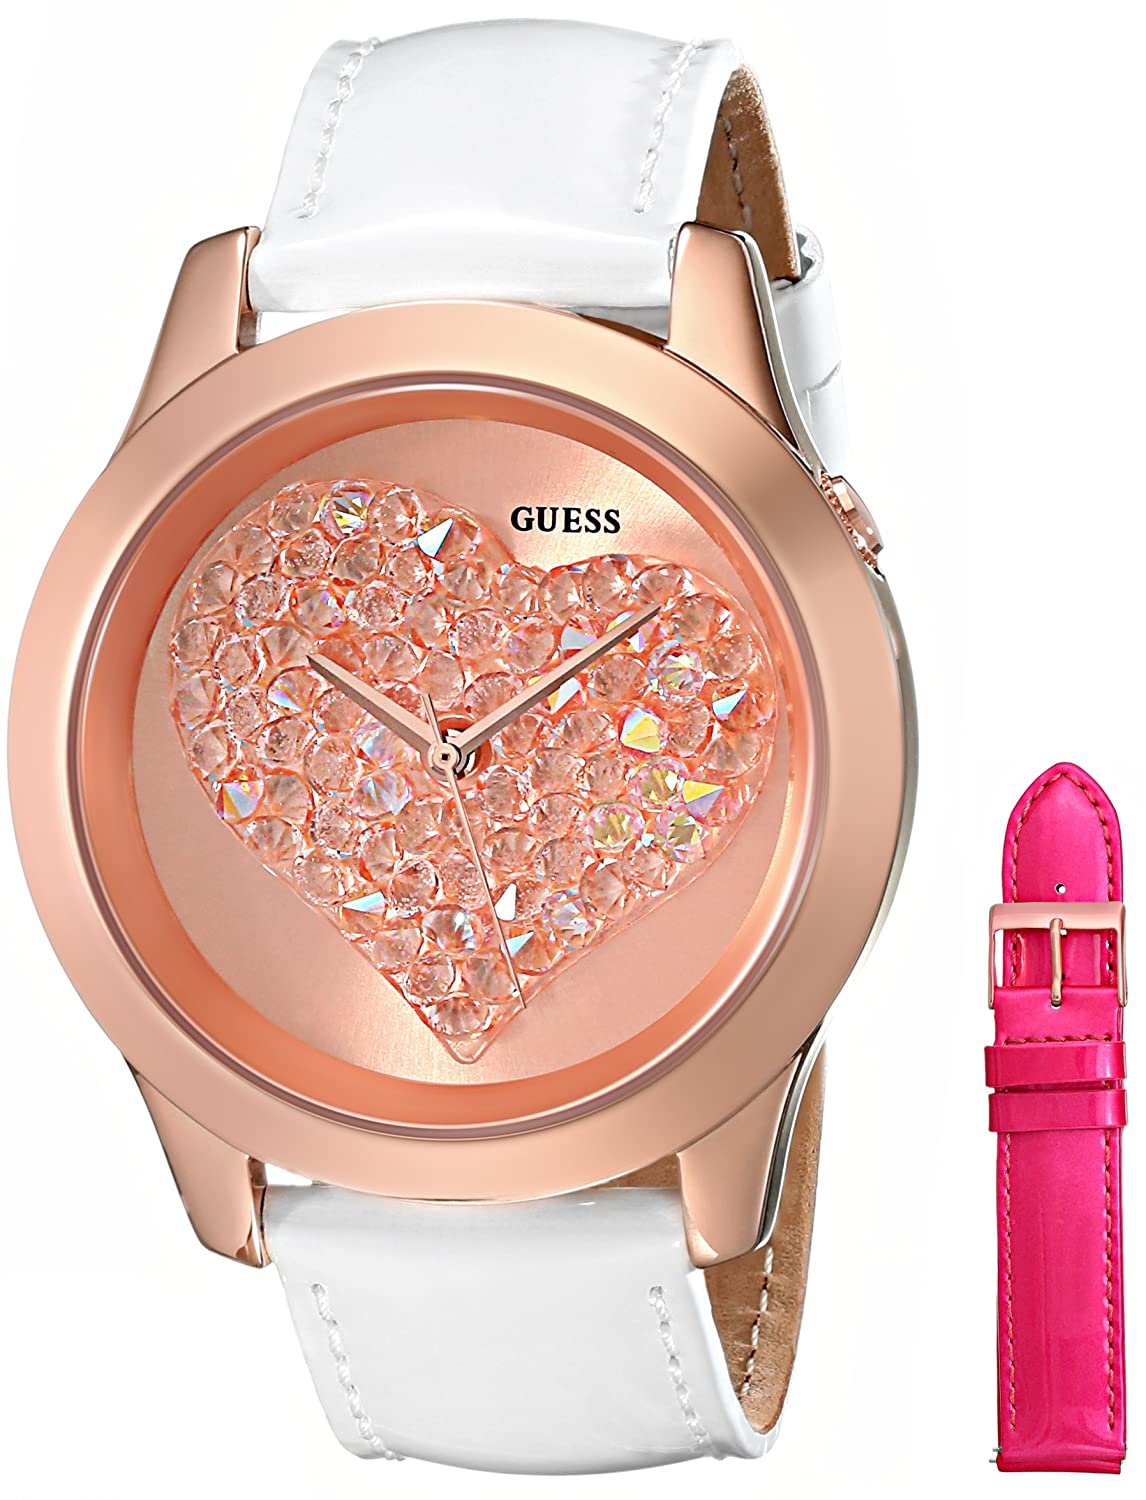 Amazon.com: GUESS Womens U0528L1 Interchangeable Wardrobe Rose Gold-Tone Heart Watch Set with Genuine Leather Straps in White & Pink: Guess: Watches